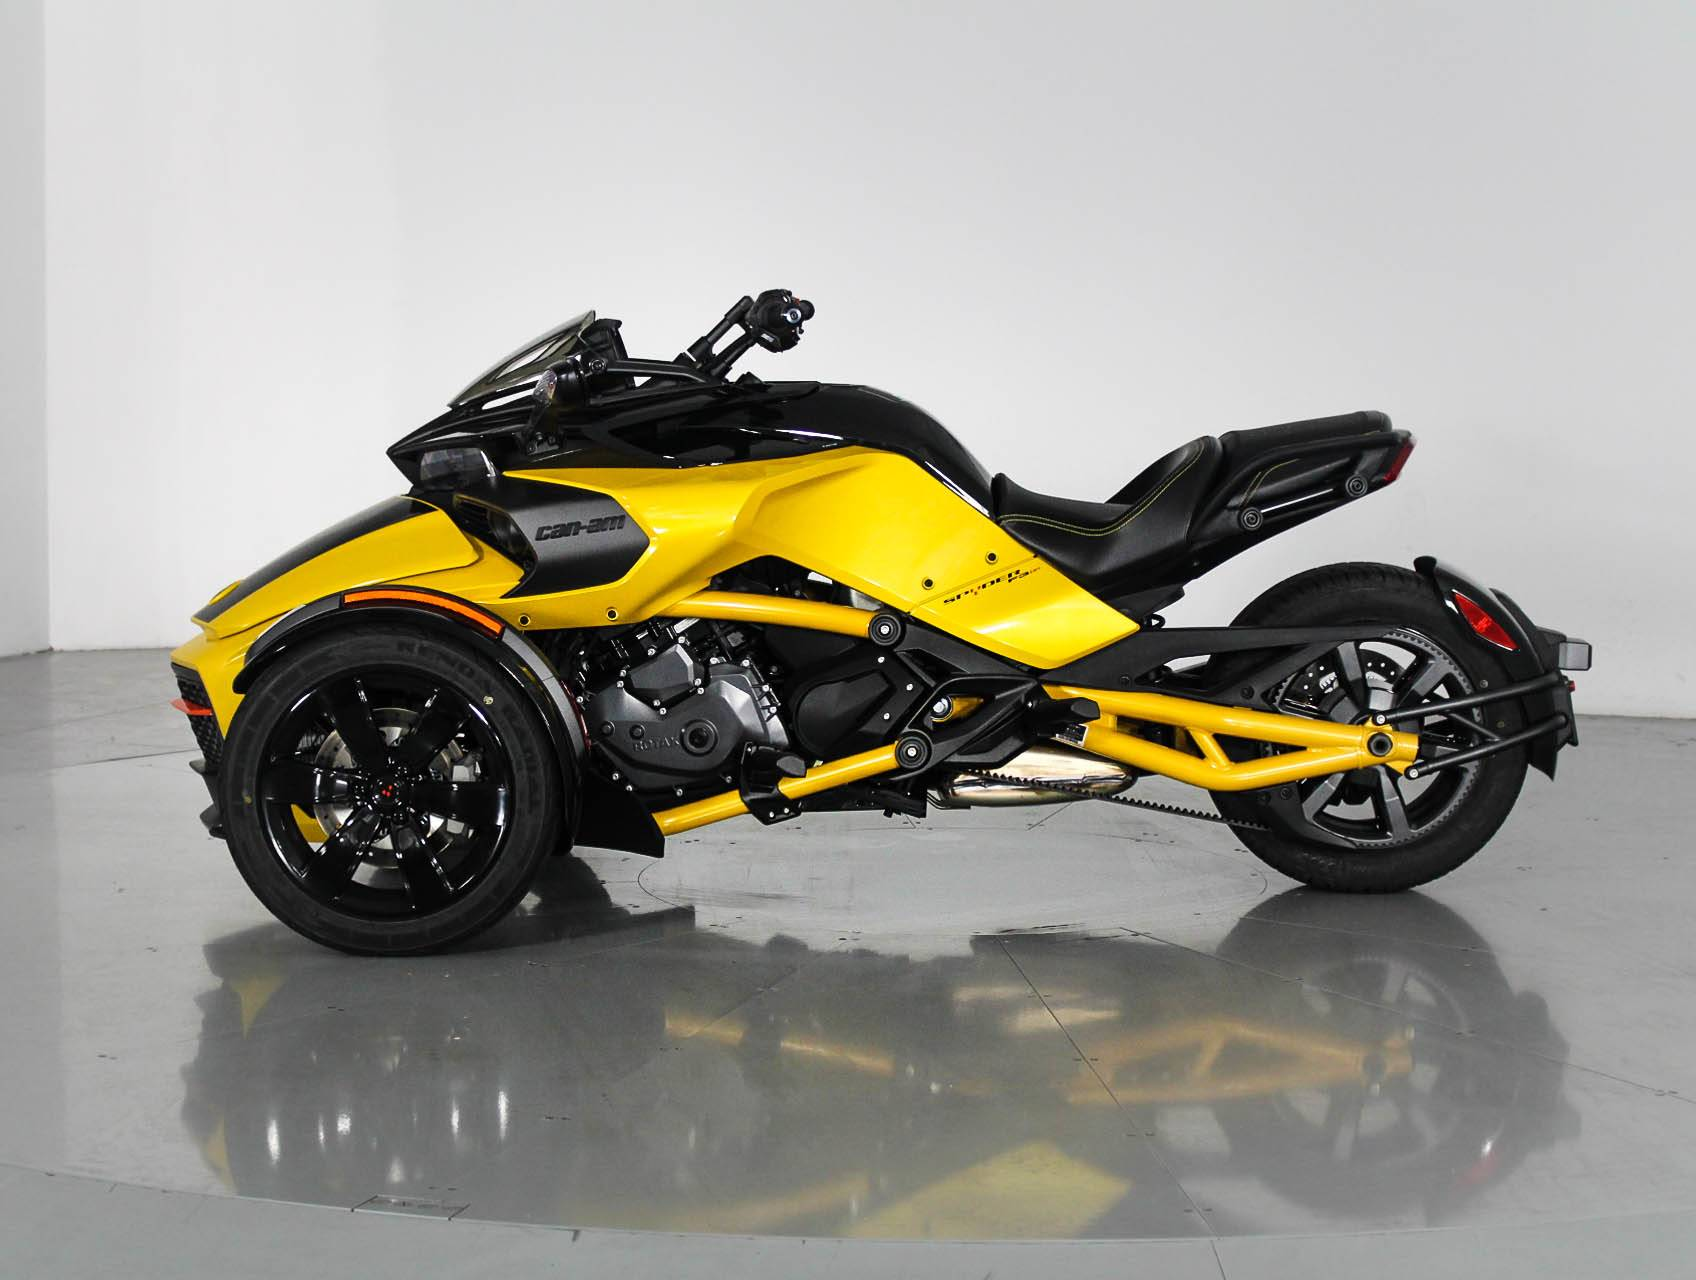 Used 2017 Can Am Spyder Daytona 500 Motorcycle For Sale In West Palm